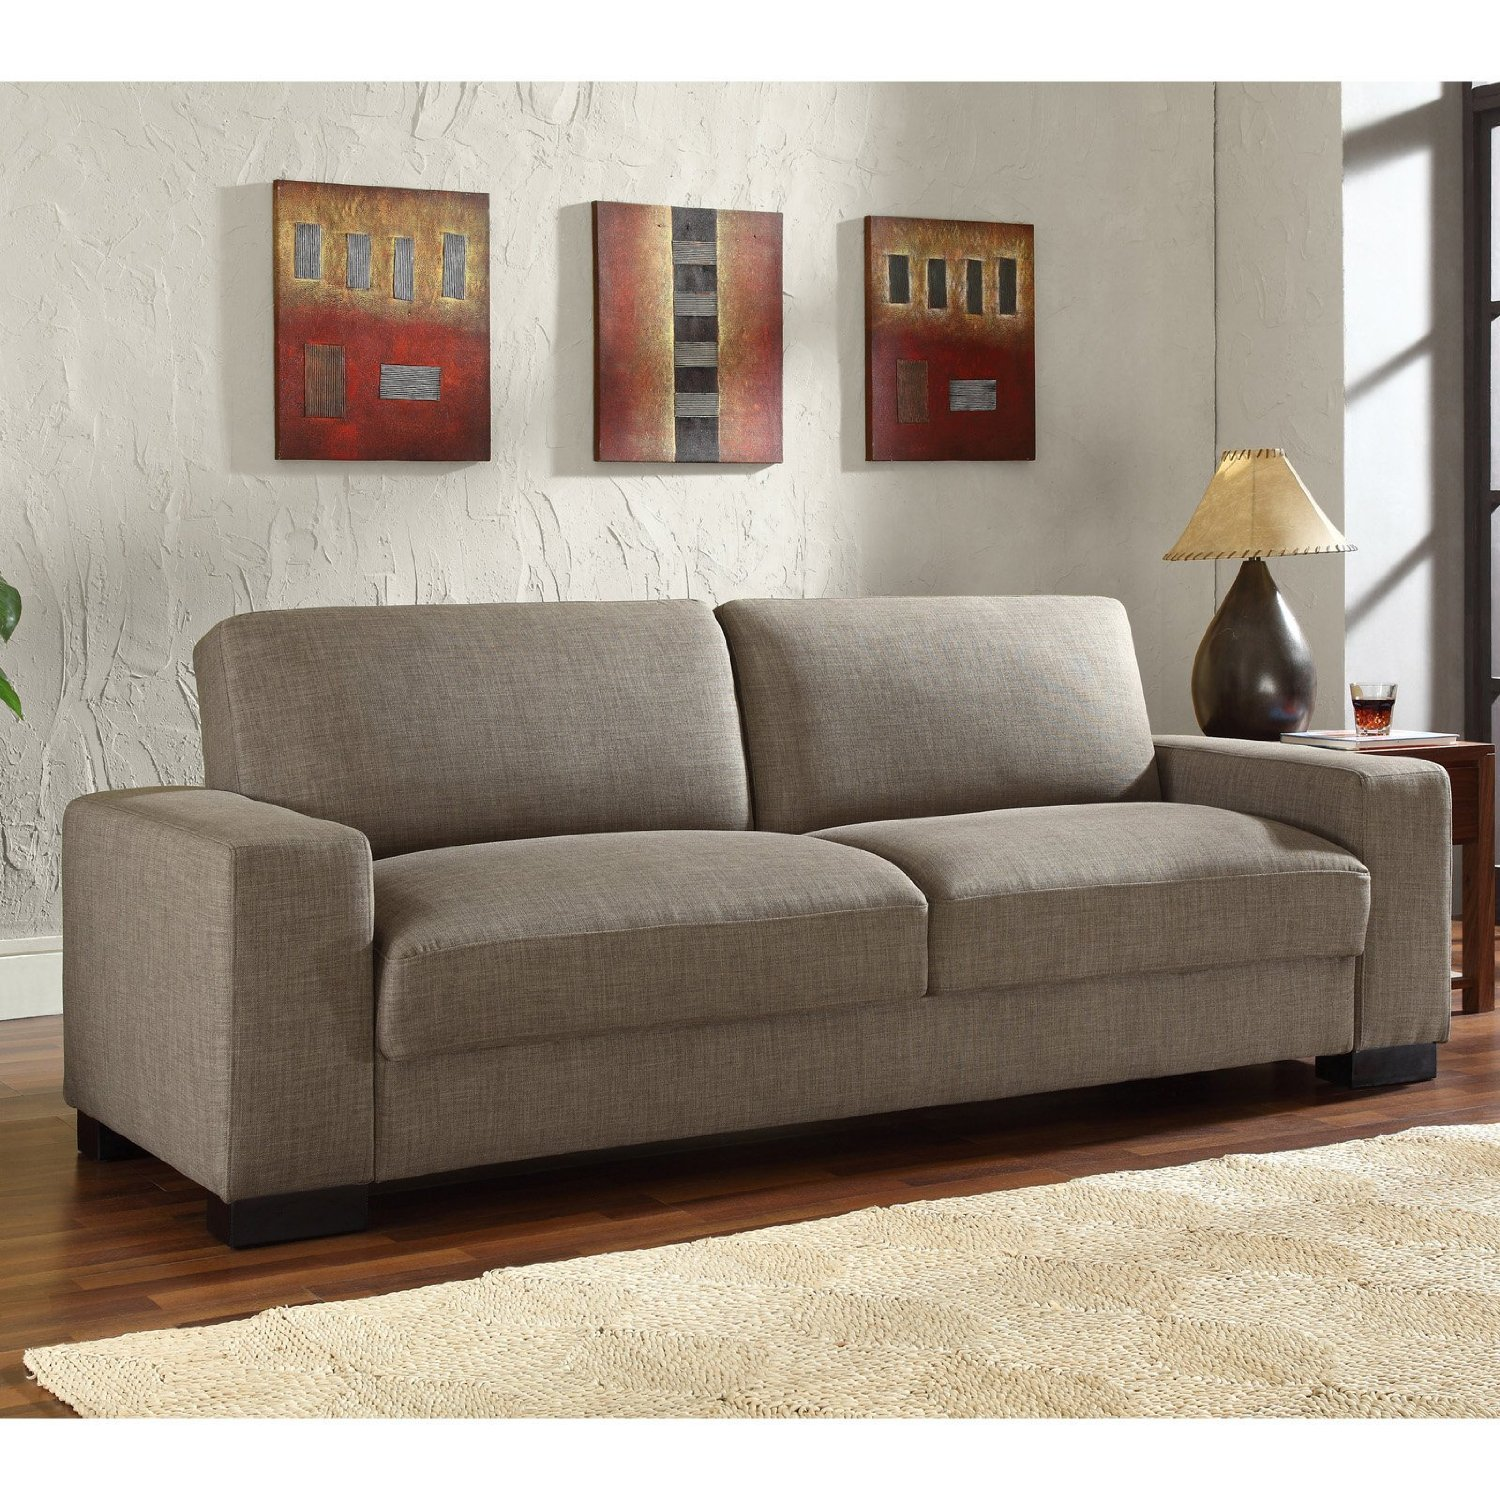 Convertible Sofa: Leather Convertible Sofa Bed